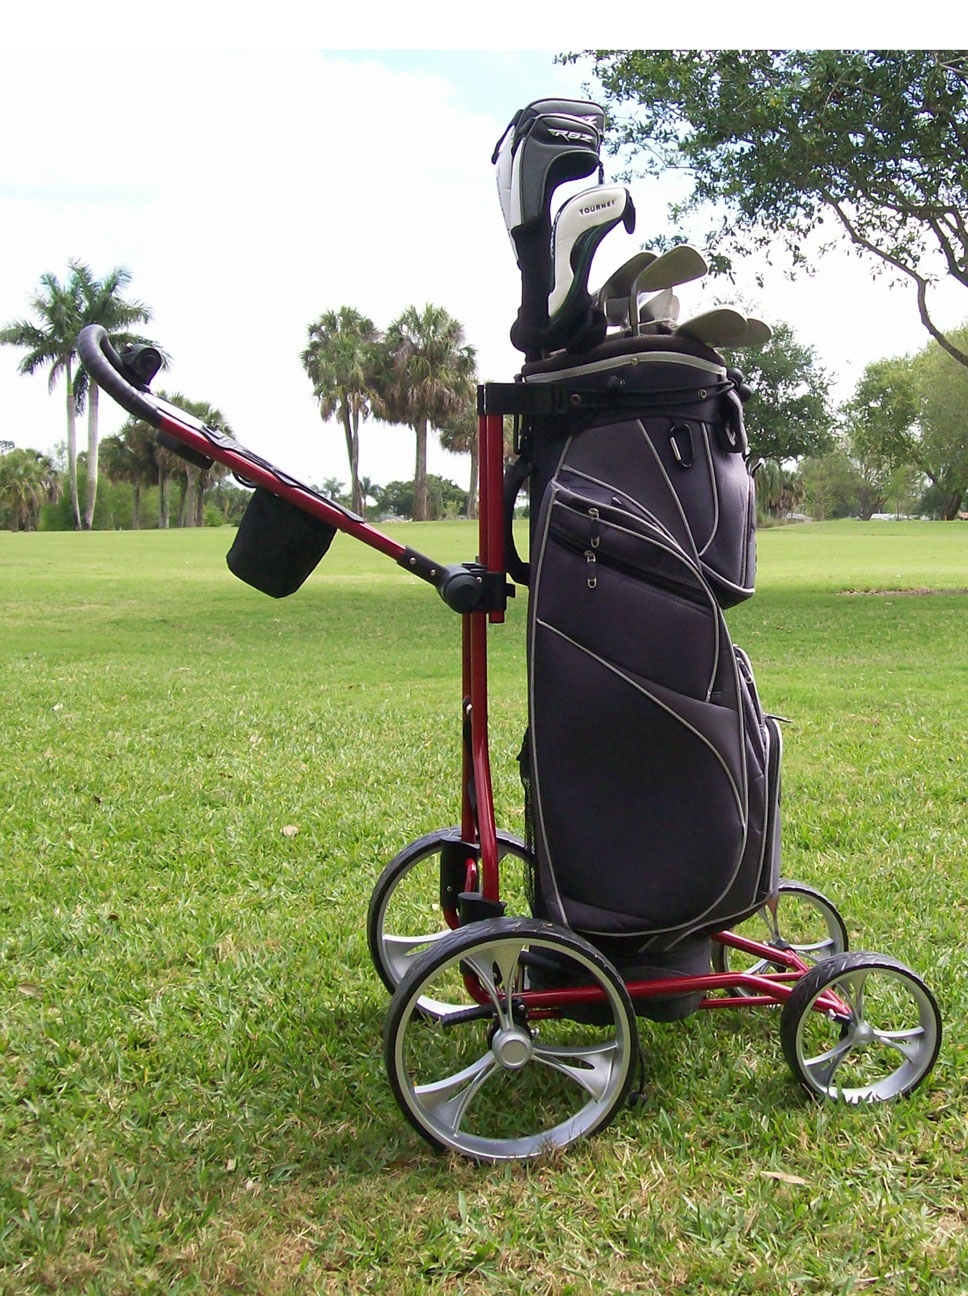 Upright Caddy By Clever Caddie Golf 2014 Push Cart 25